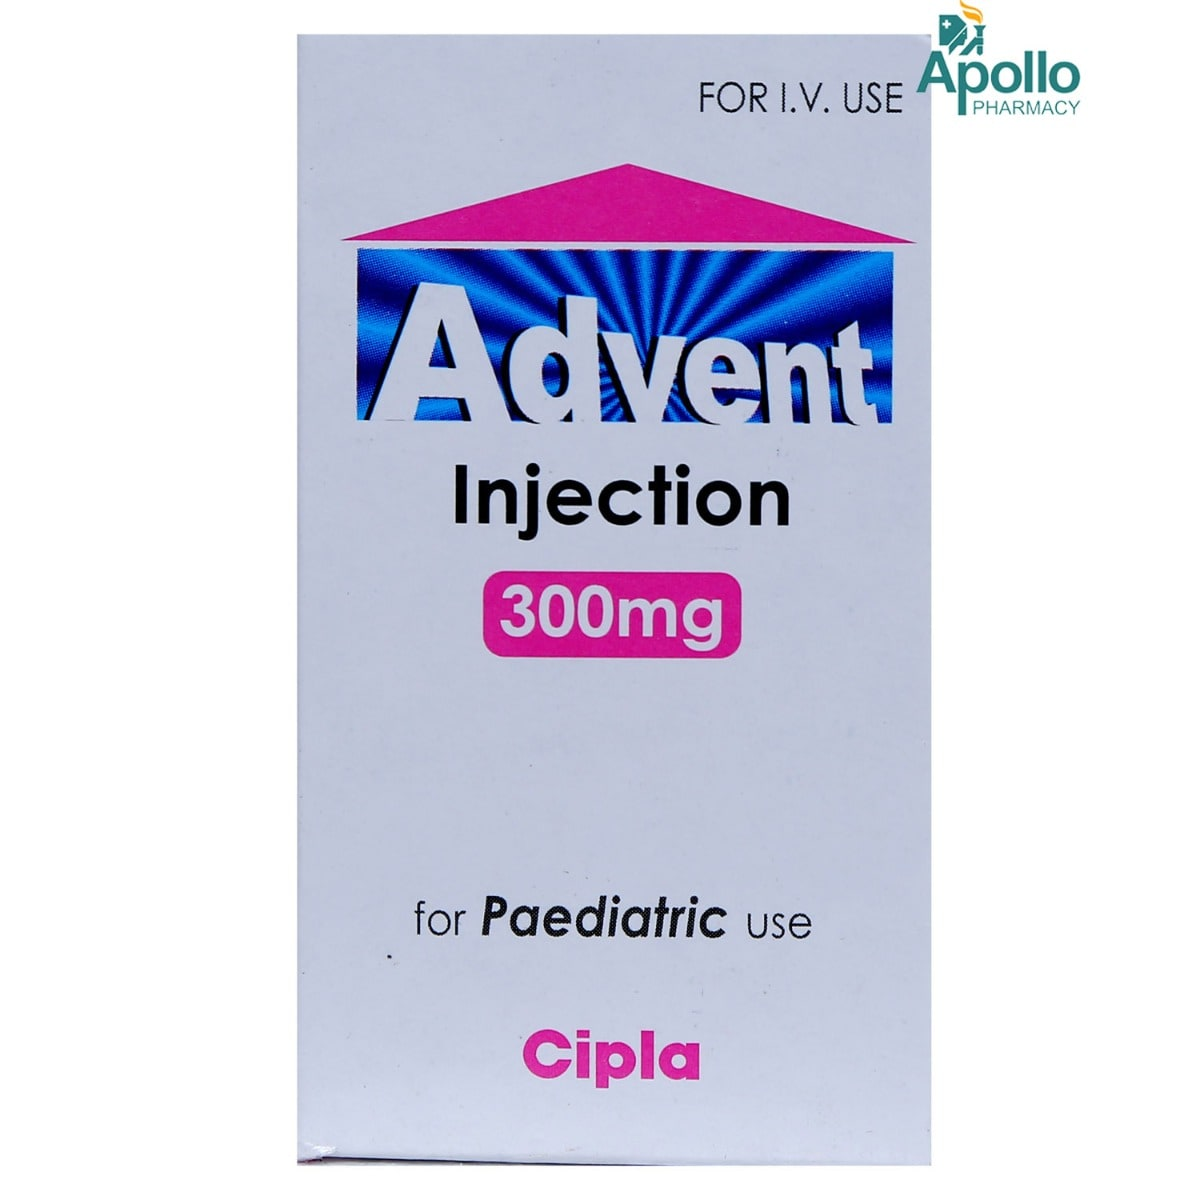 ADVENT 300MG INJECTION